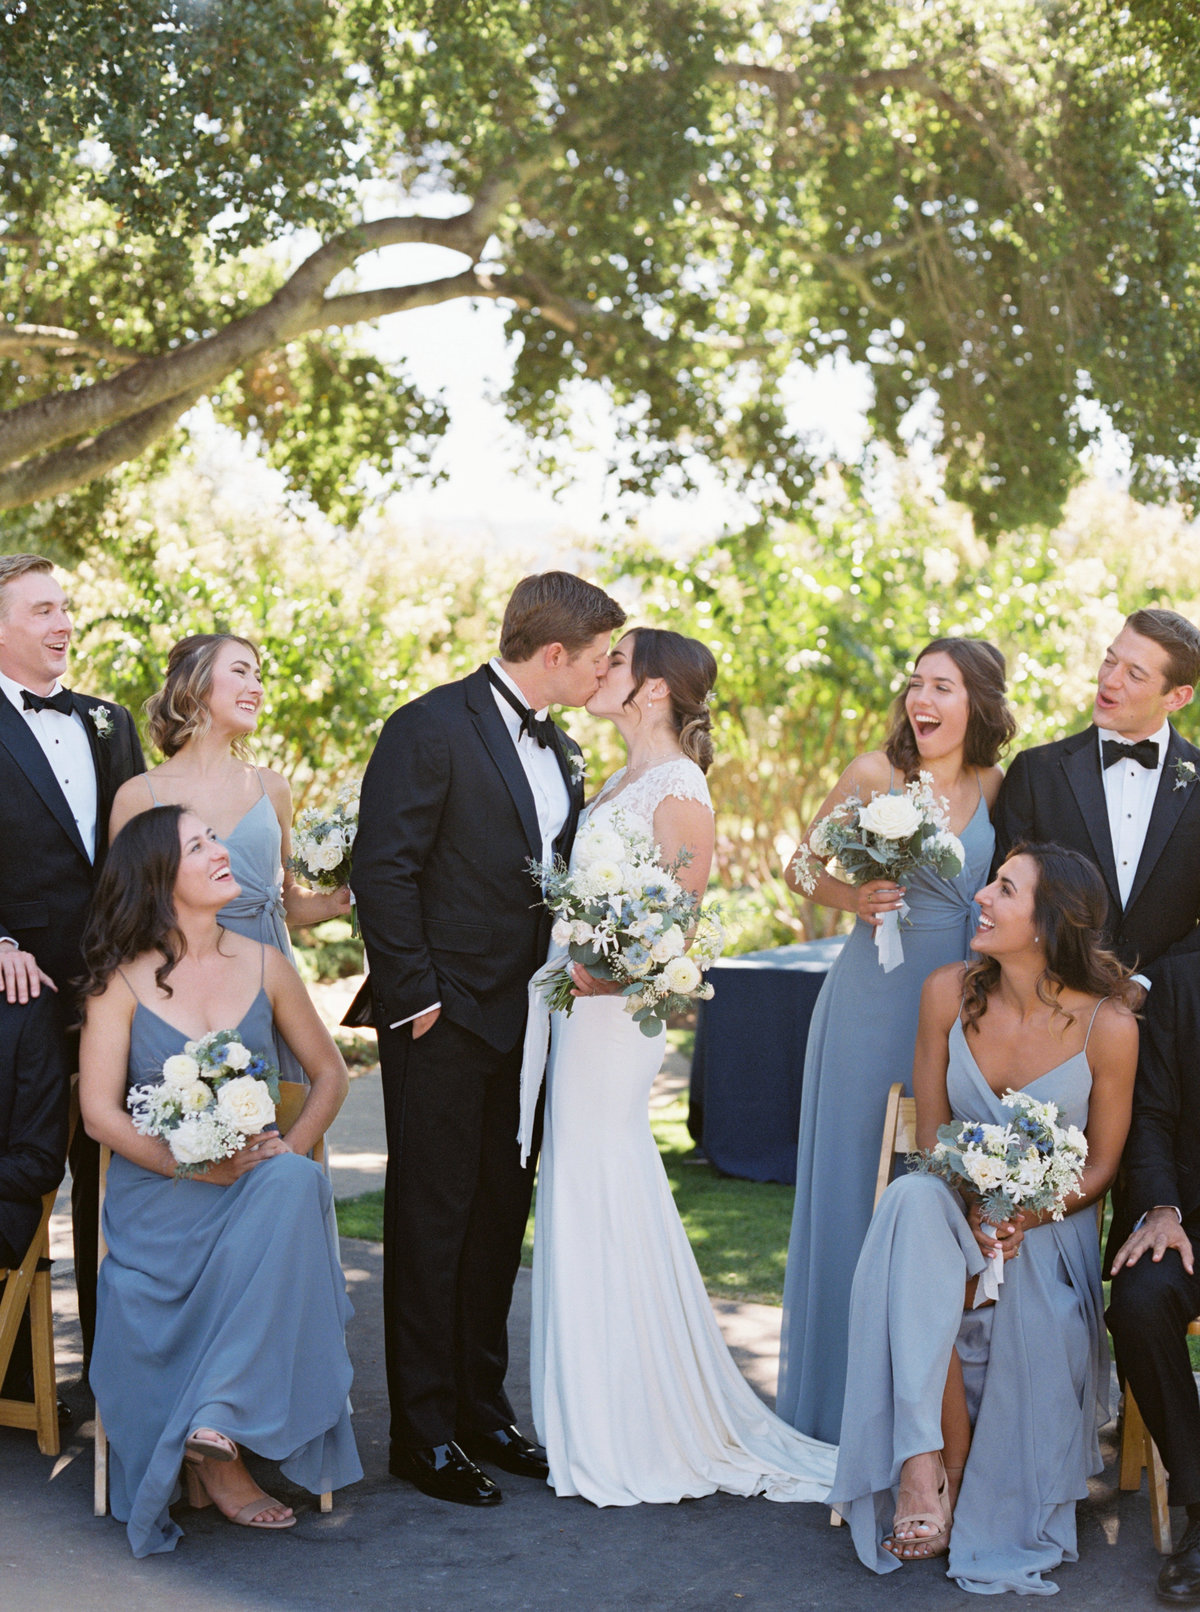 Katie + Jordan Carmel Valley Holman Ranch Wedding Sneak Peeks - Cassie Valente Photography 0018